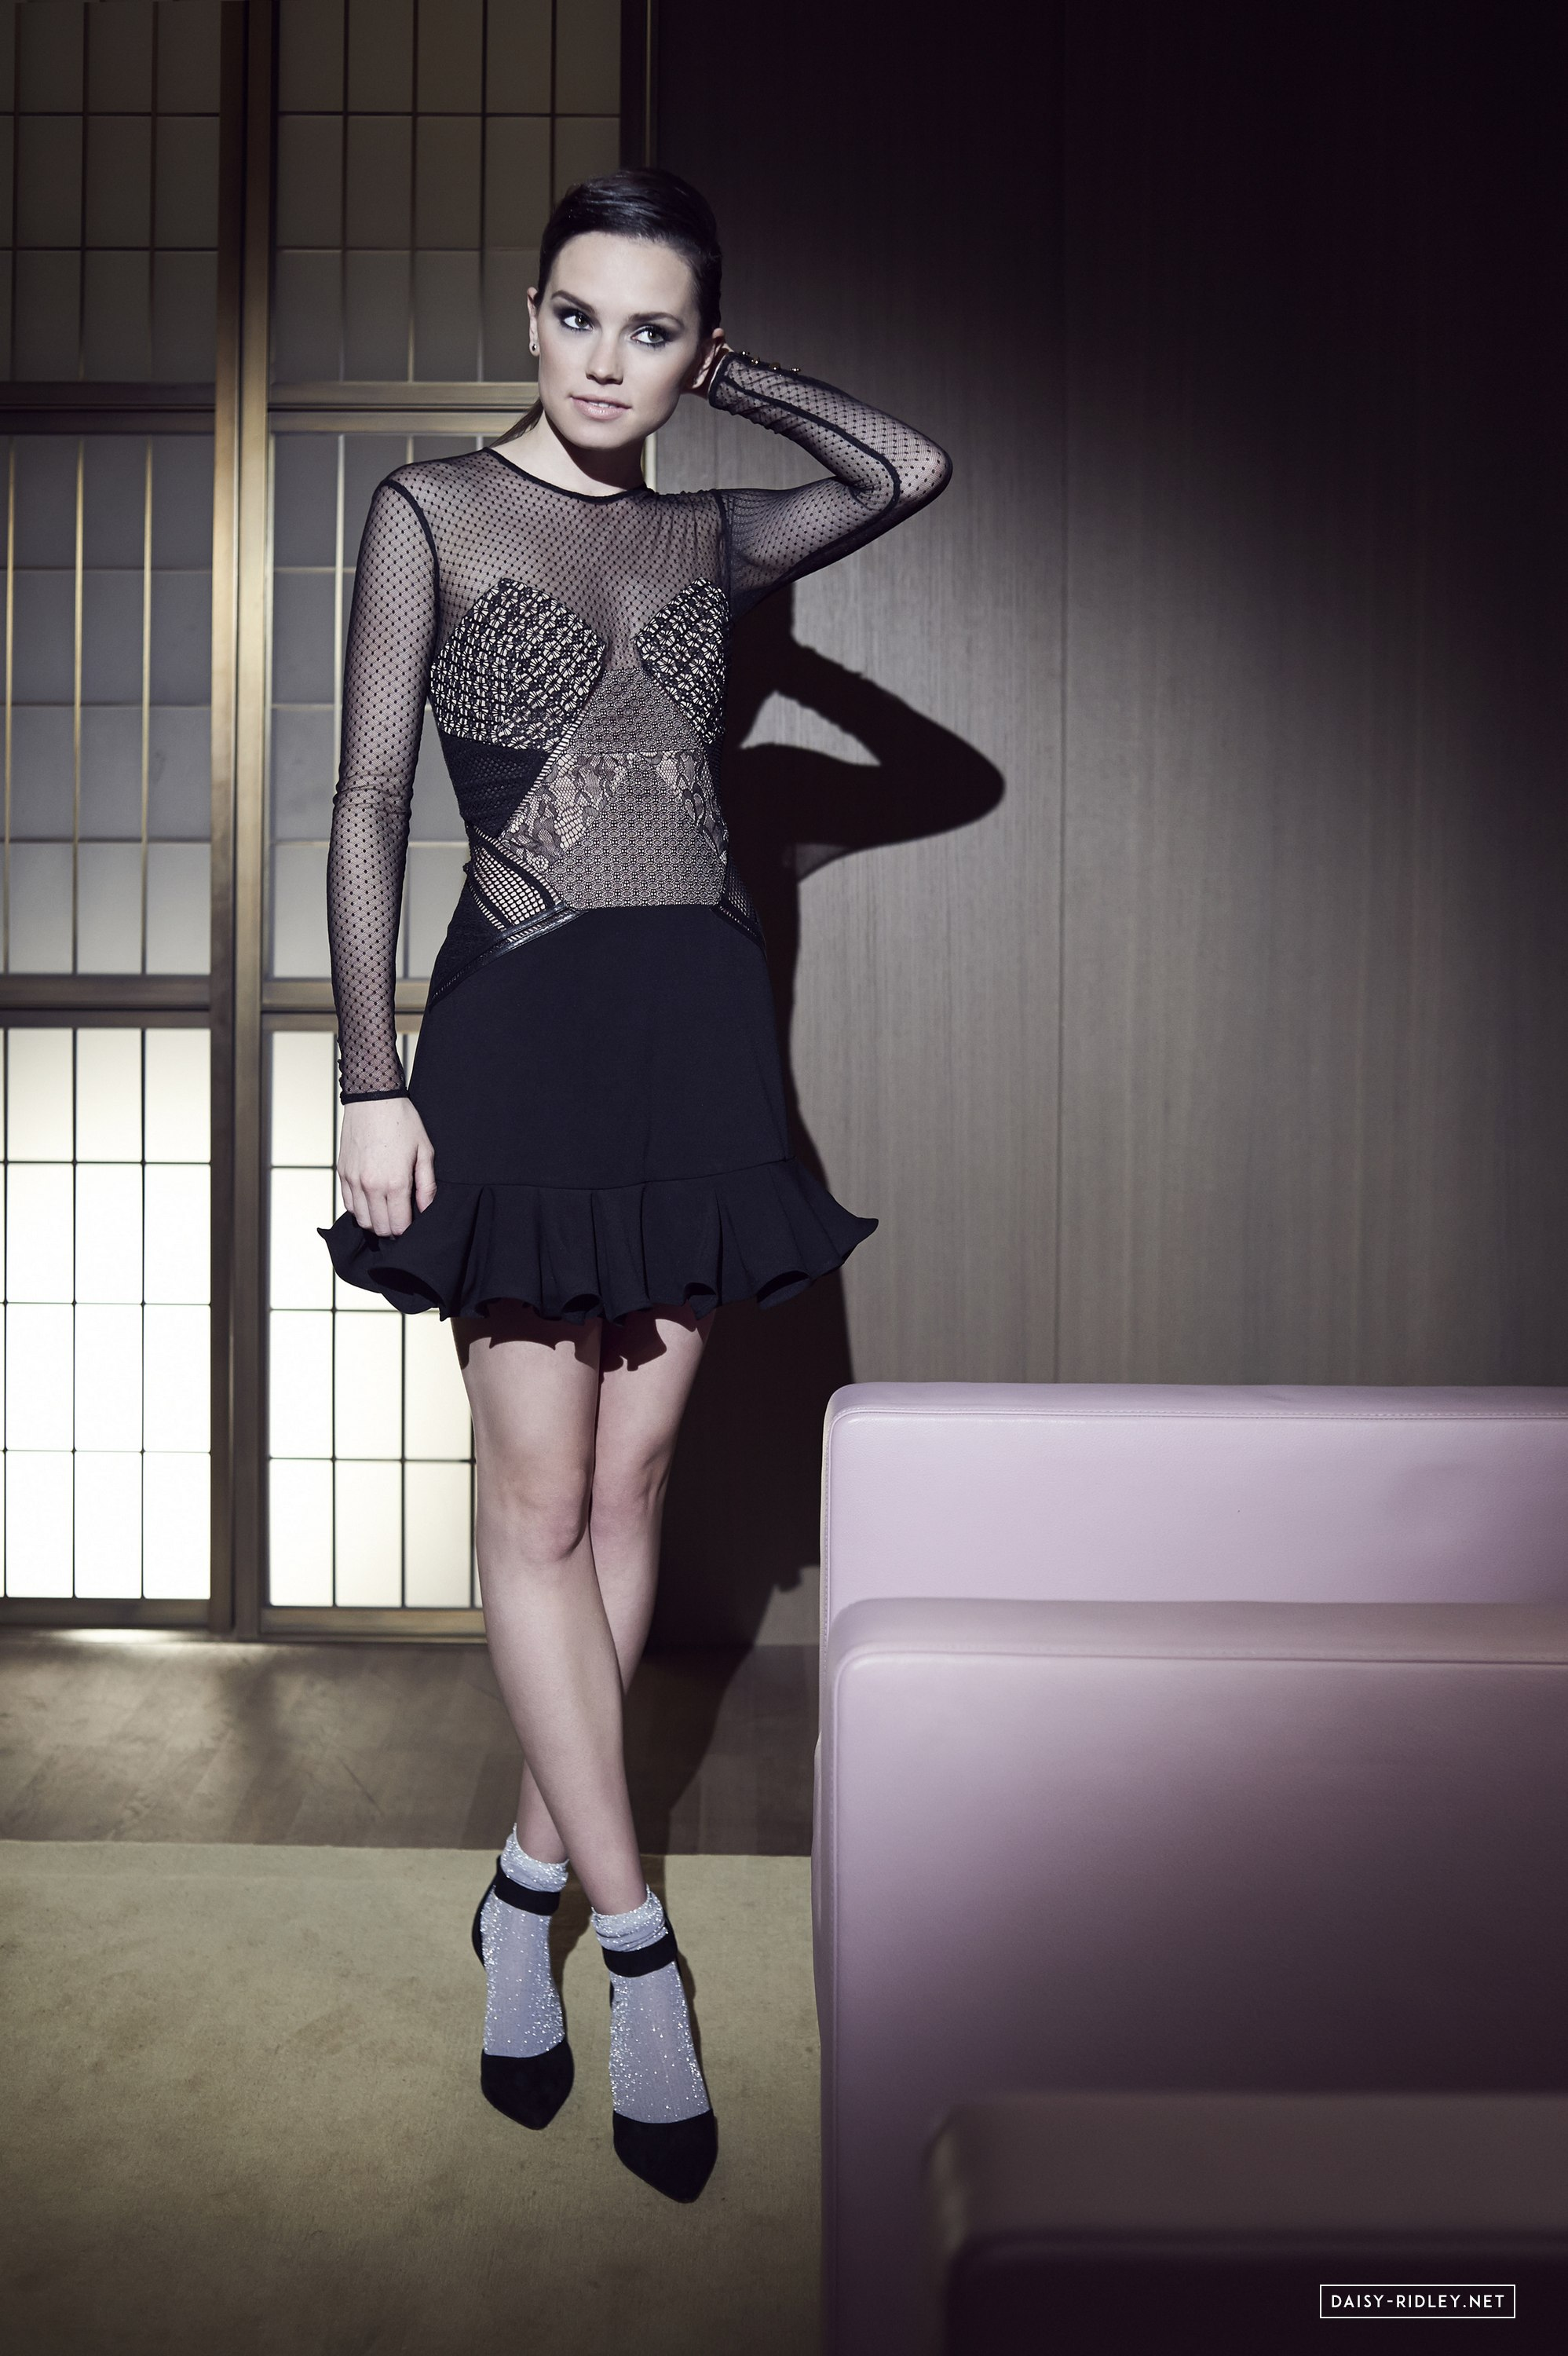 hermosas top d ridley photosession 001 009